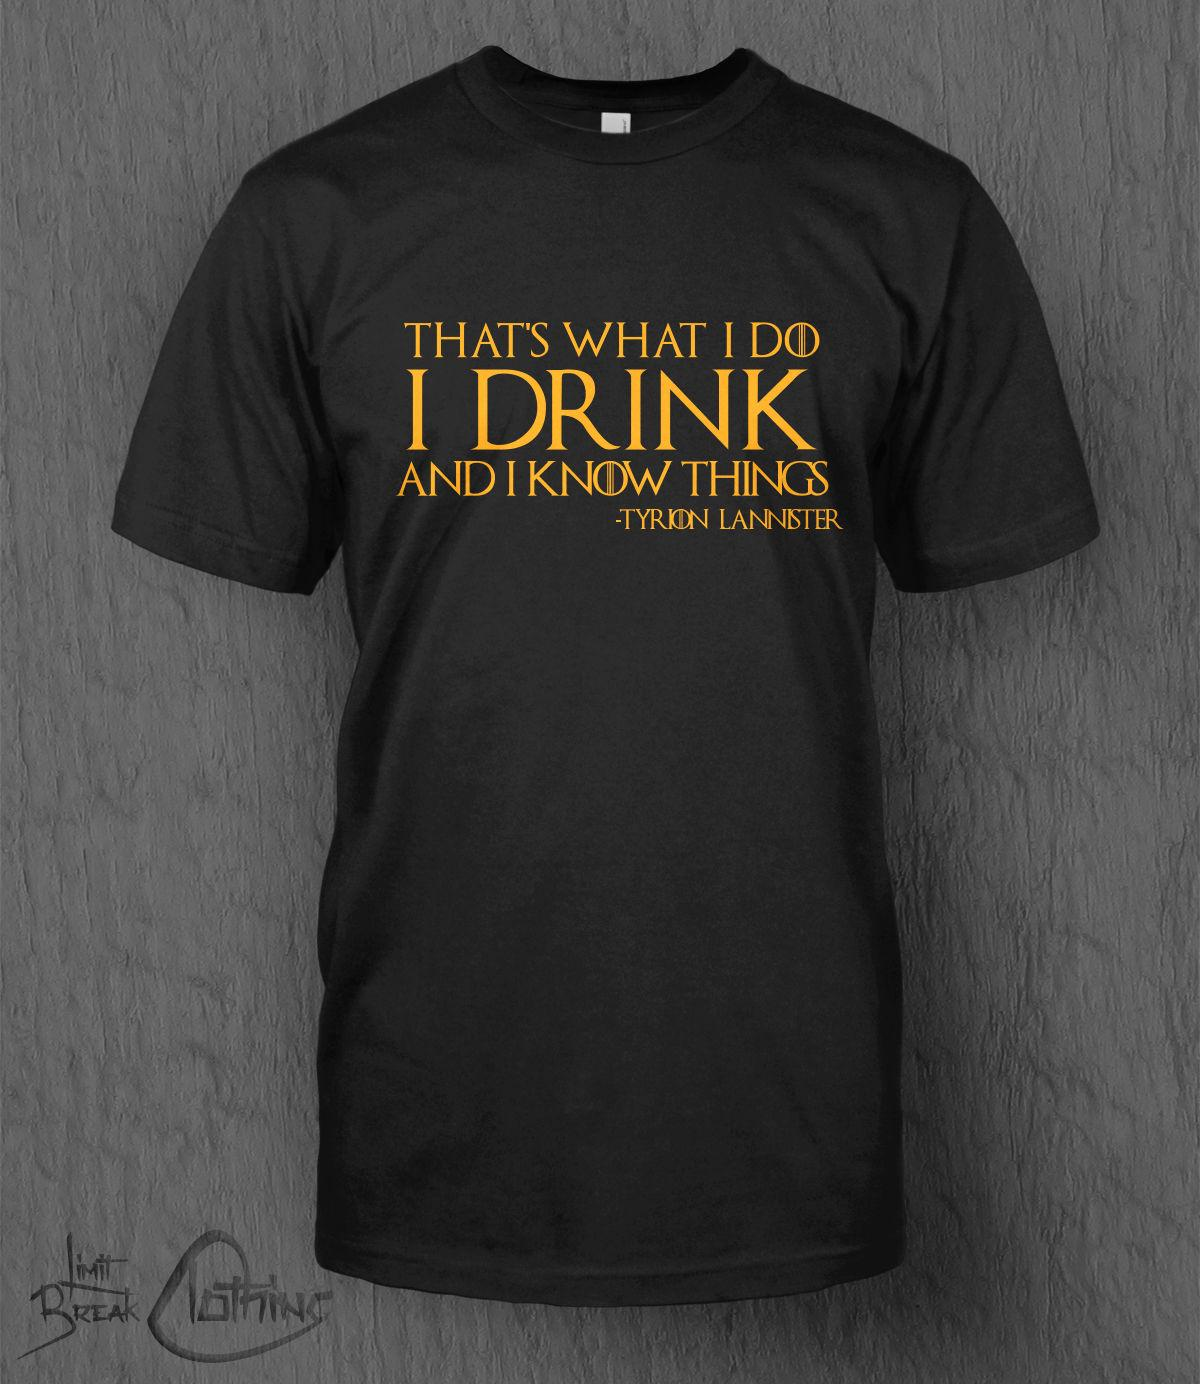 89c019f225c Details zu Game of Thrones T-Shirt I Drink And I Know Things MEN S Tyrion  Lannister Quote Unisex Funny High Quality Casual Printing